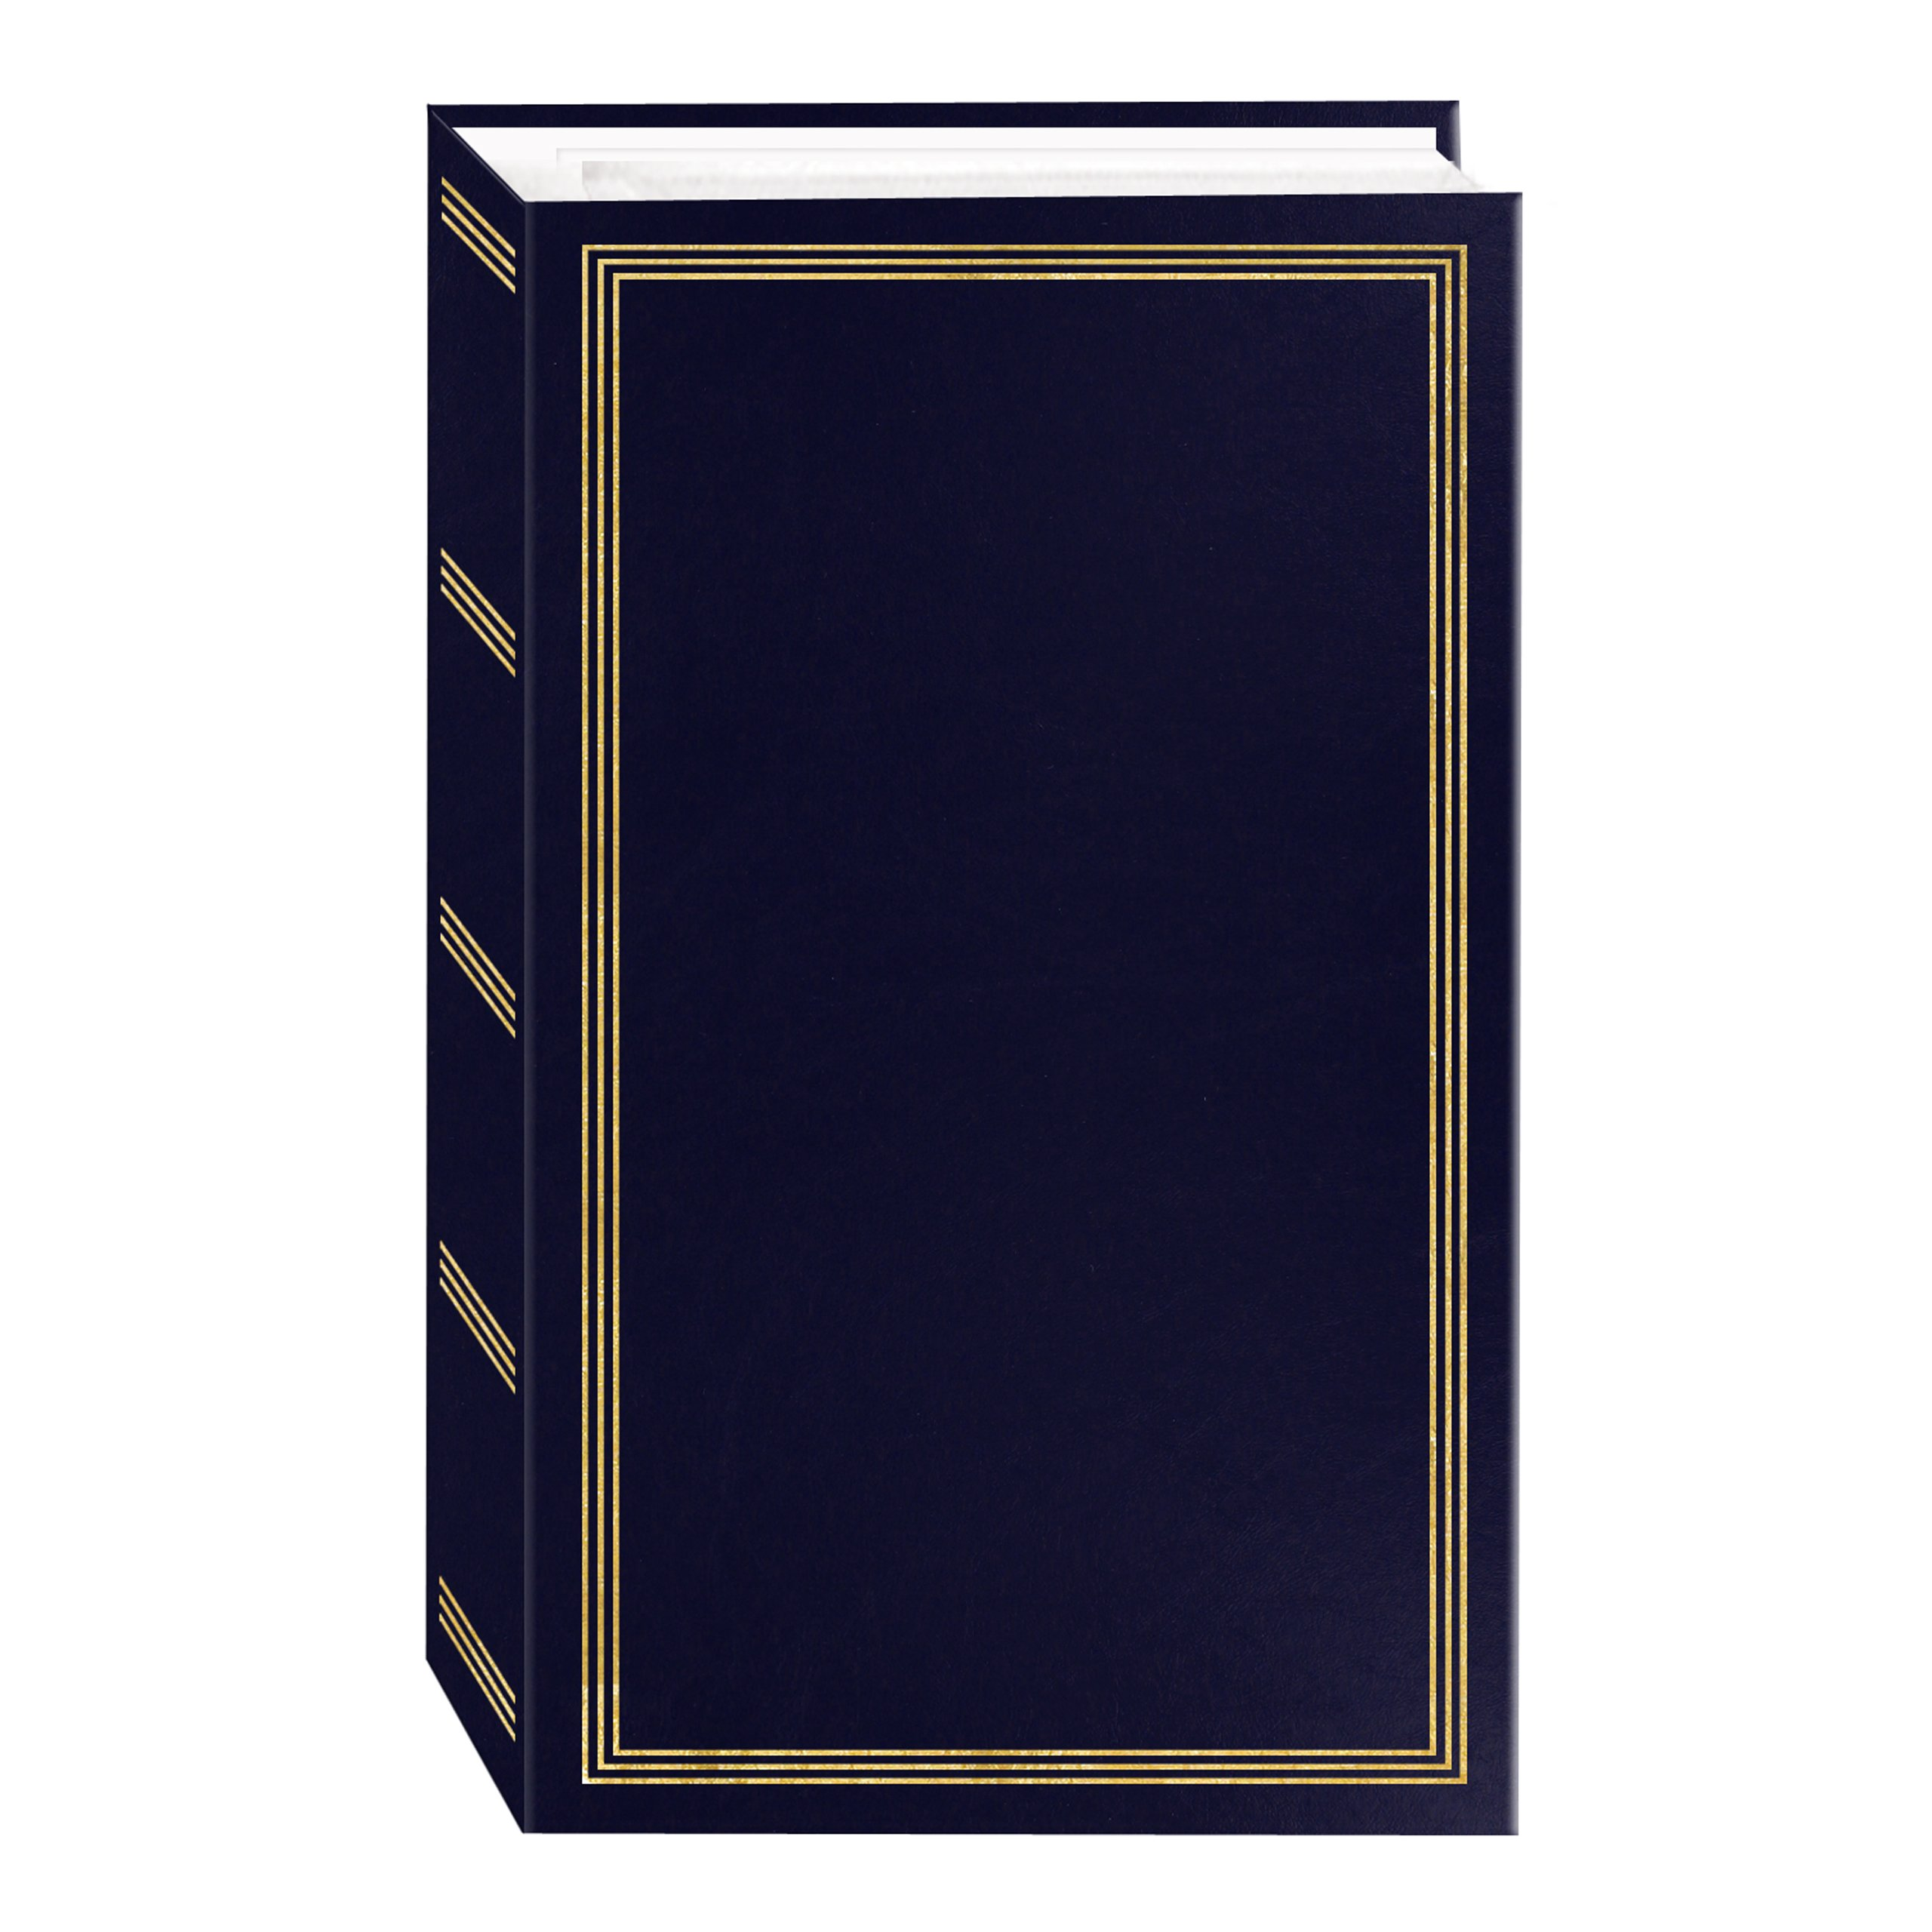 3-Ring Photo Album 504 Pockets Hold 4x6 Photos, Navy Blue by Pioneer Photo Albums